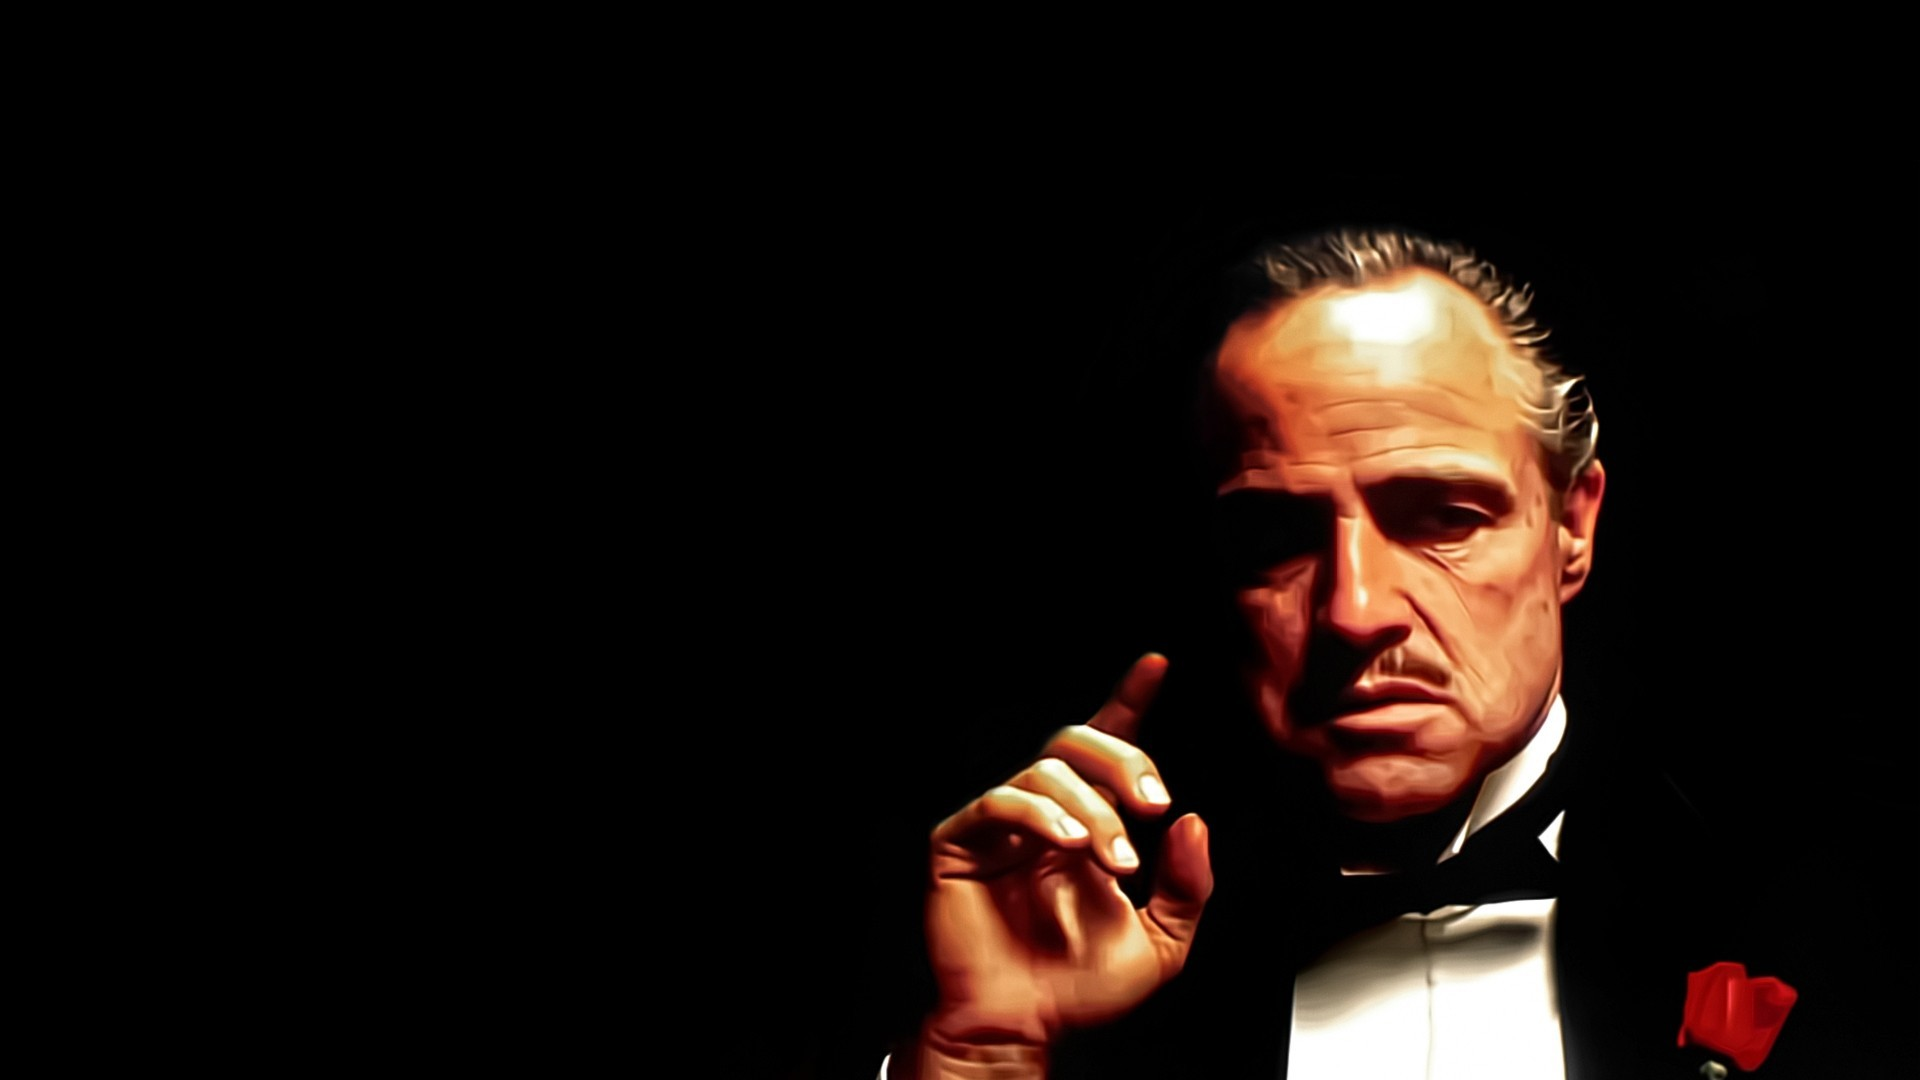 1920x1080 Don Vito Corleone | Godfather | pictures and wallpaper for desktop